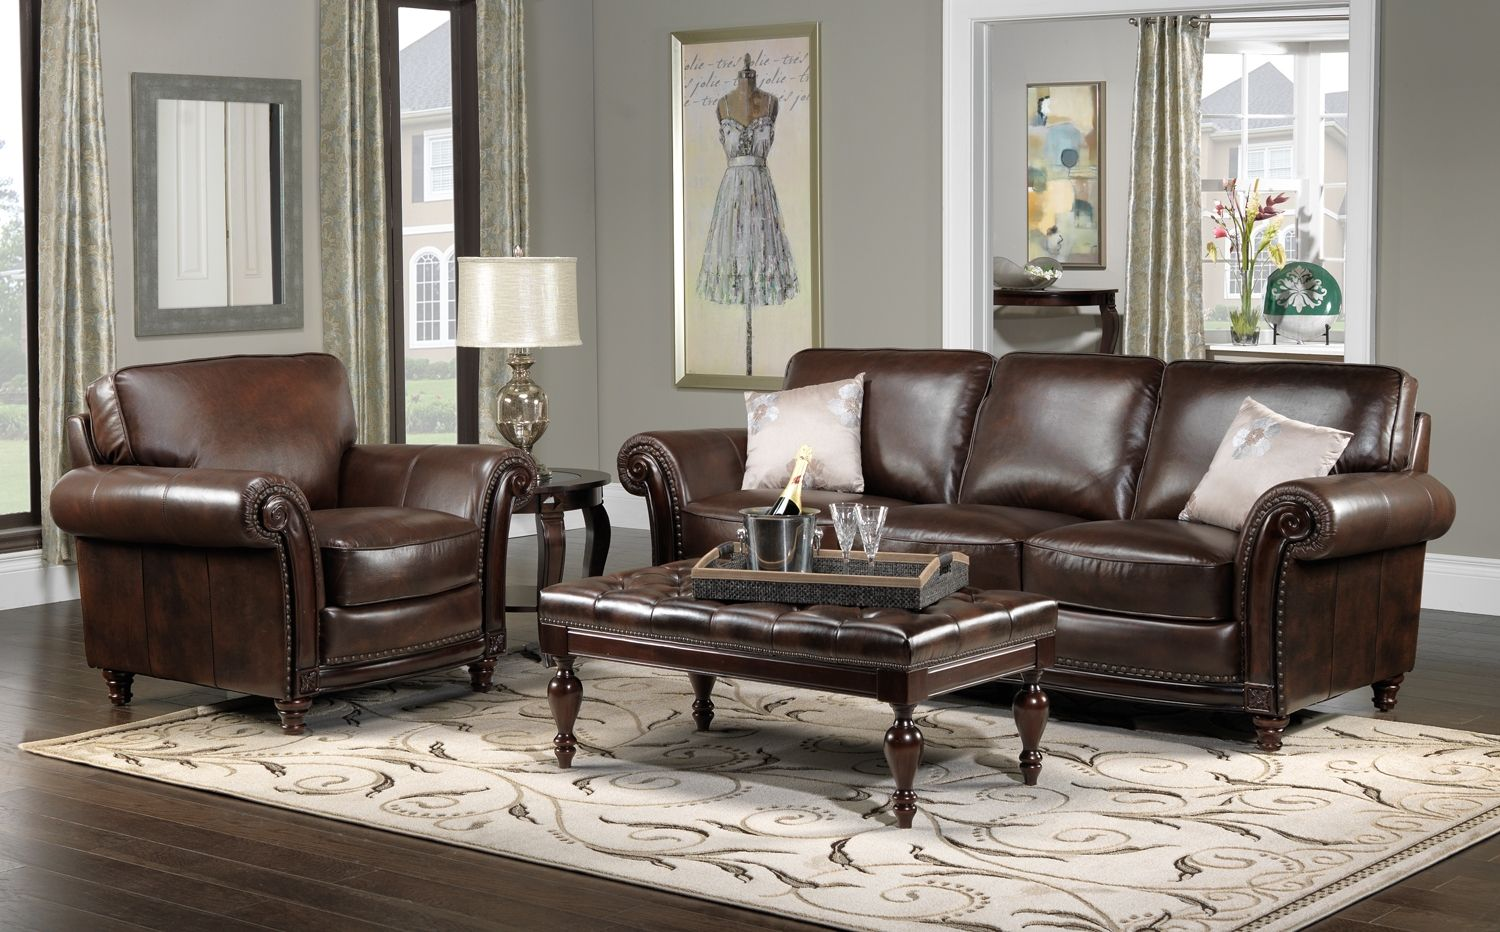 Living Room Decorating Ideas For Brown Furniture decoration living rooms with leather furniture. brown leather sofa